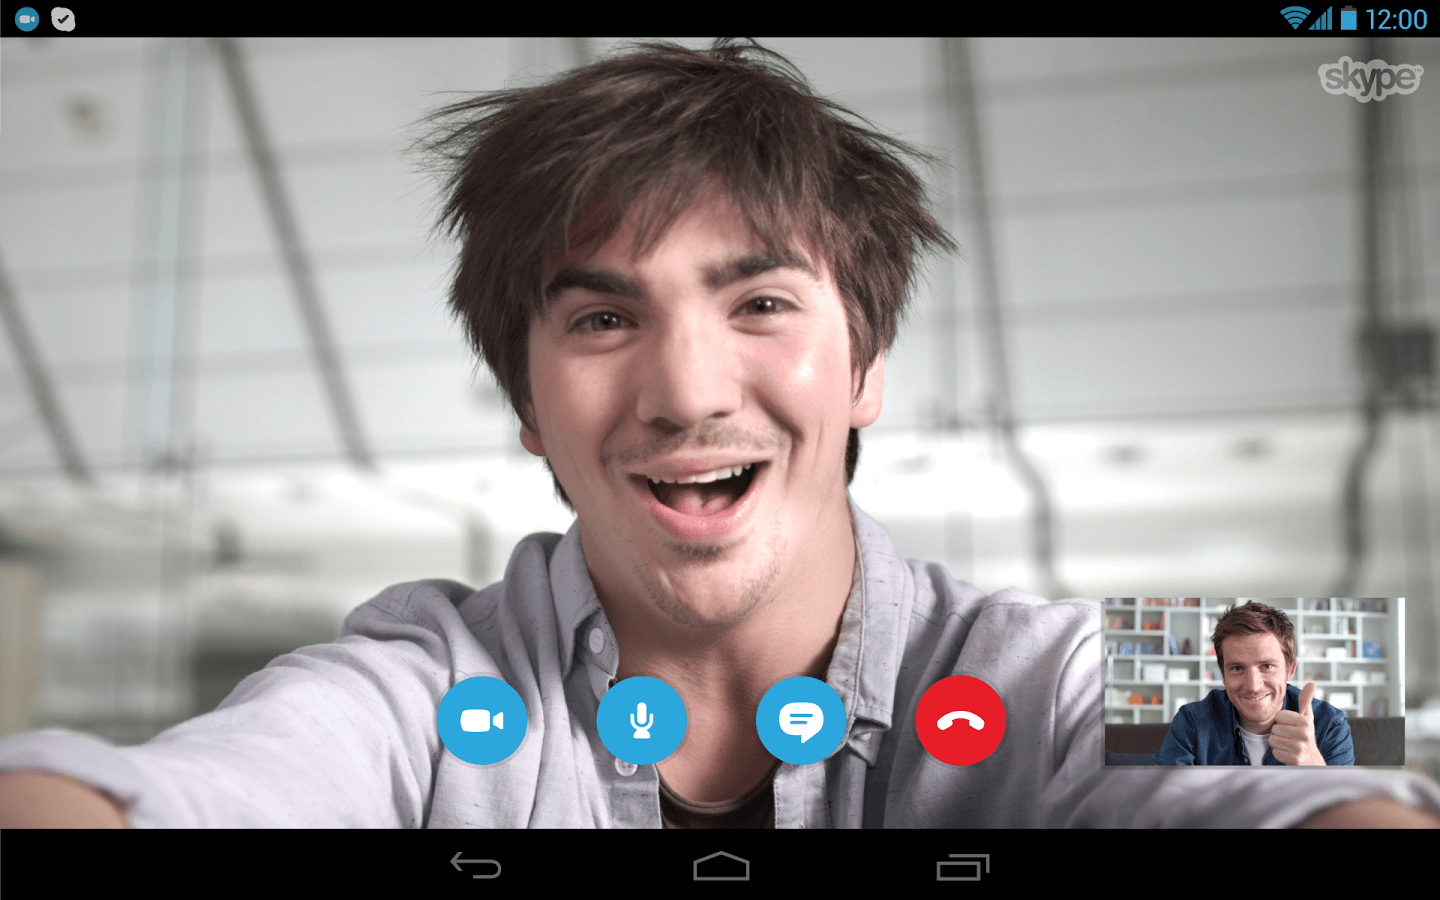 group video calling app